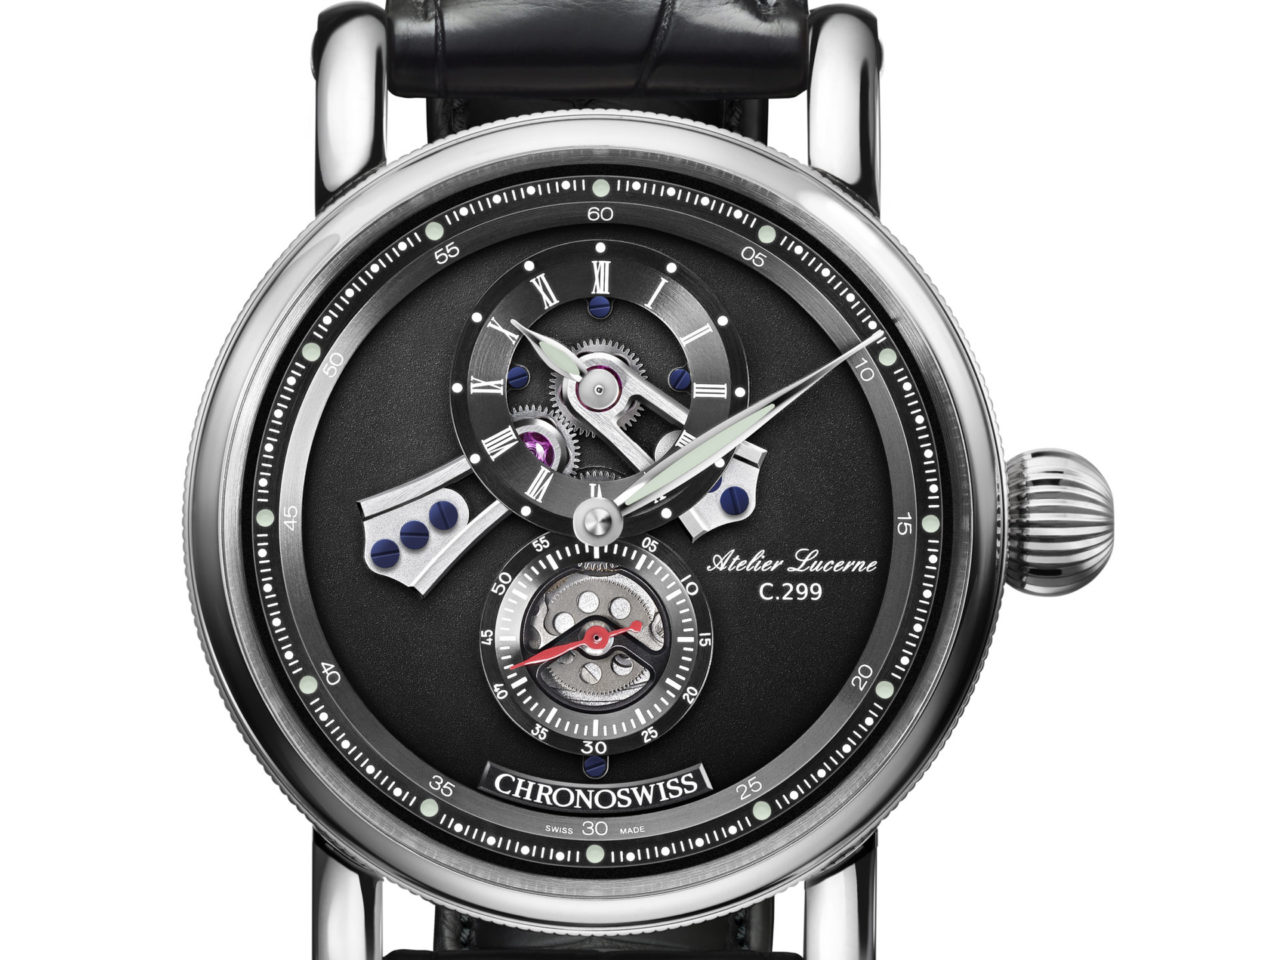 Chronoswiss Regulator Open Gear